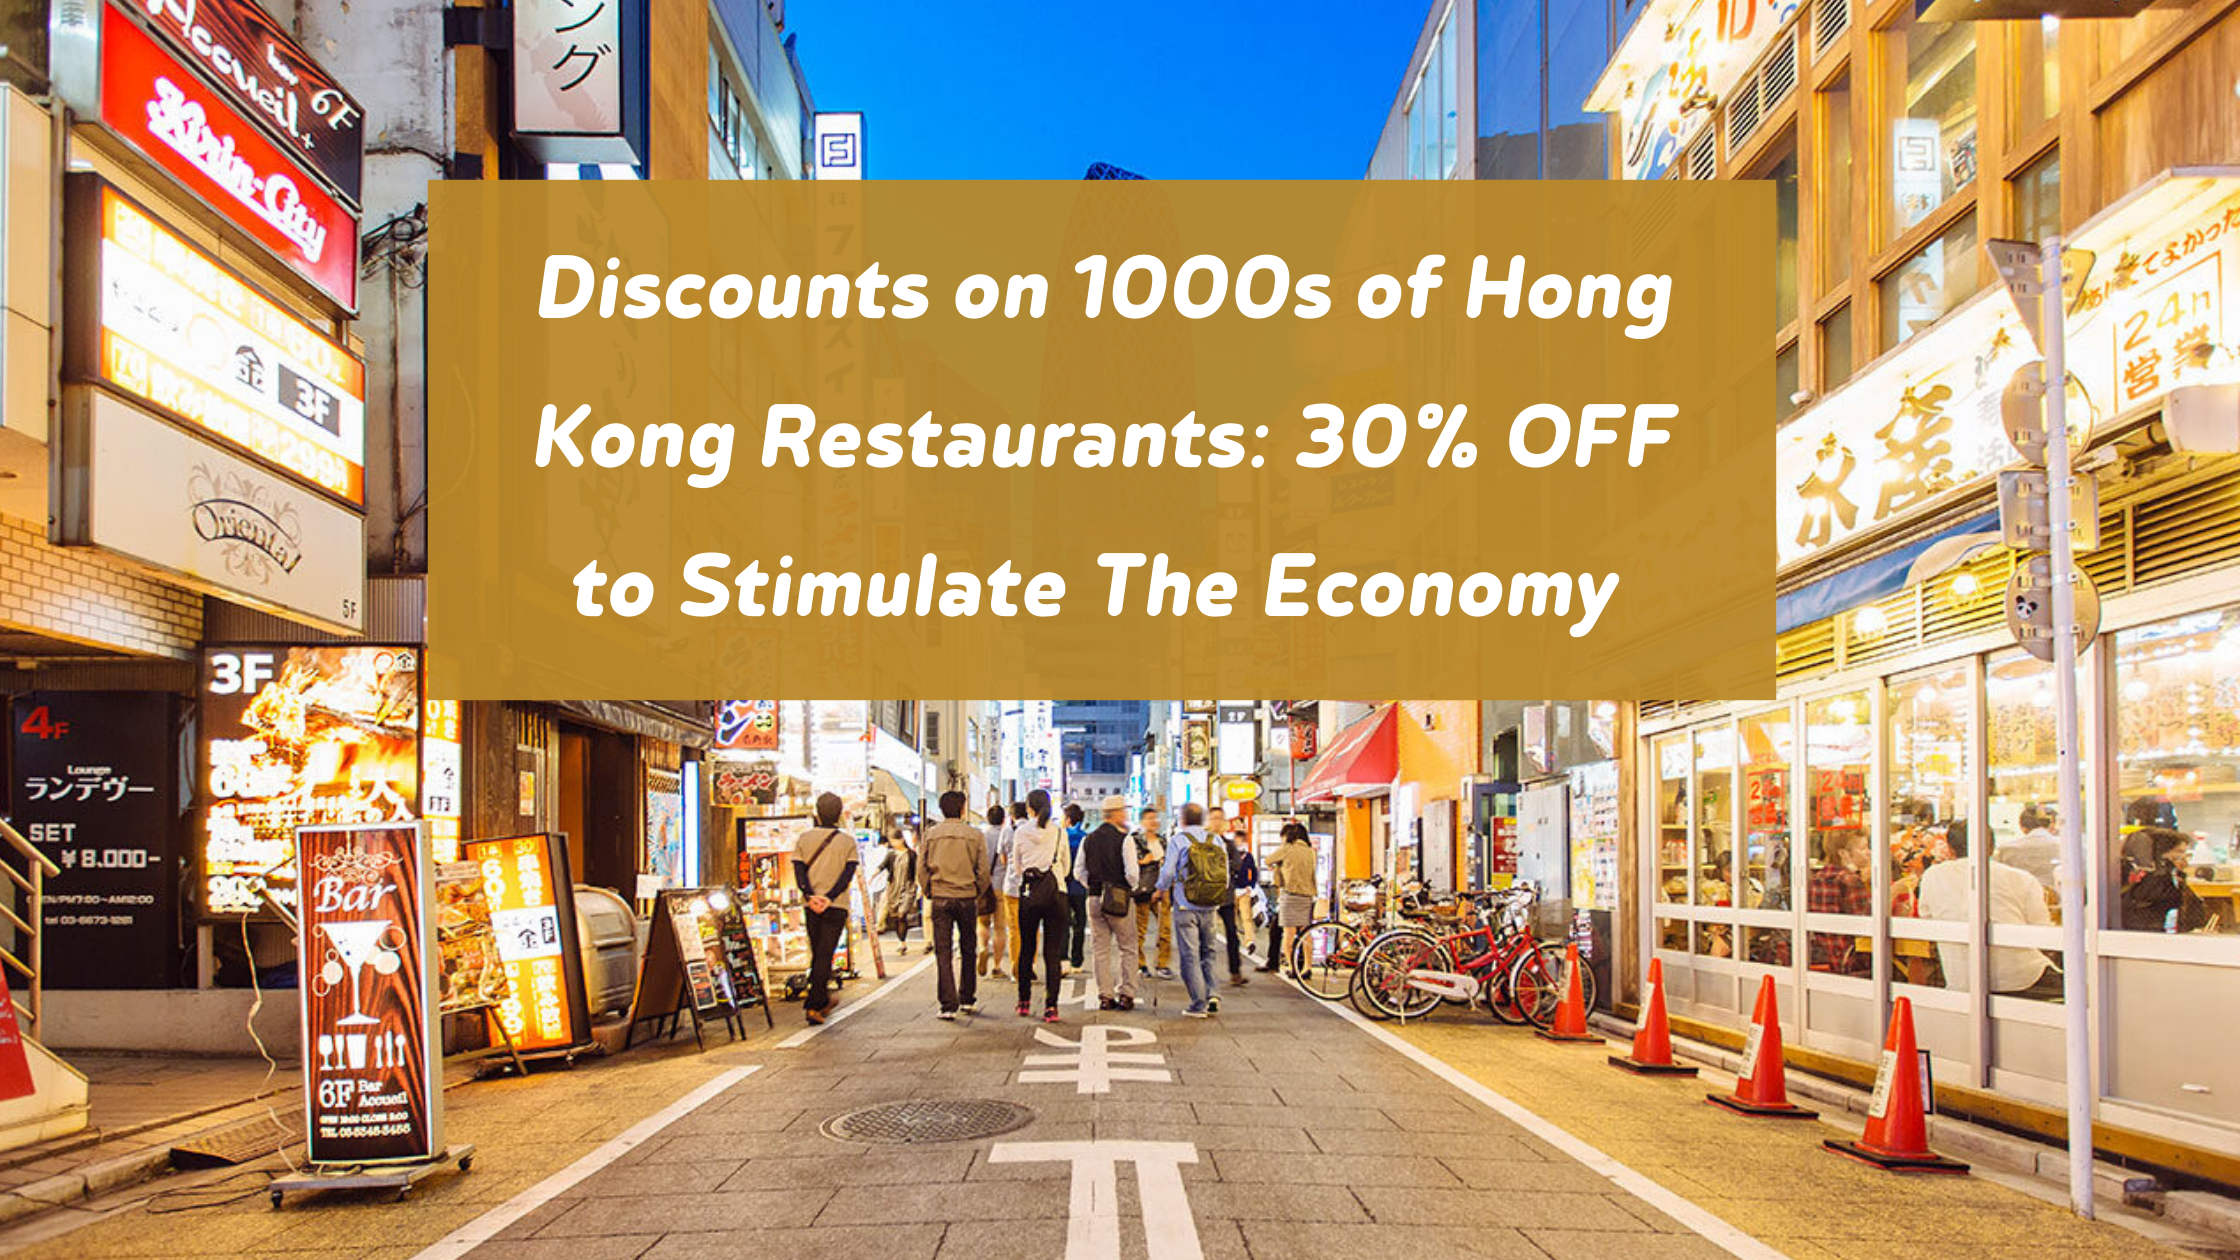 Discounts on 1000s of Hong Kong Restaurants 30 OFF to Stimulate The Economy